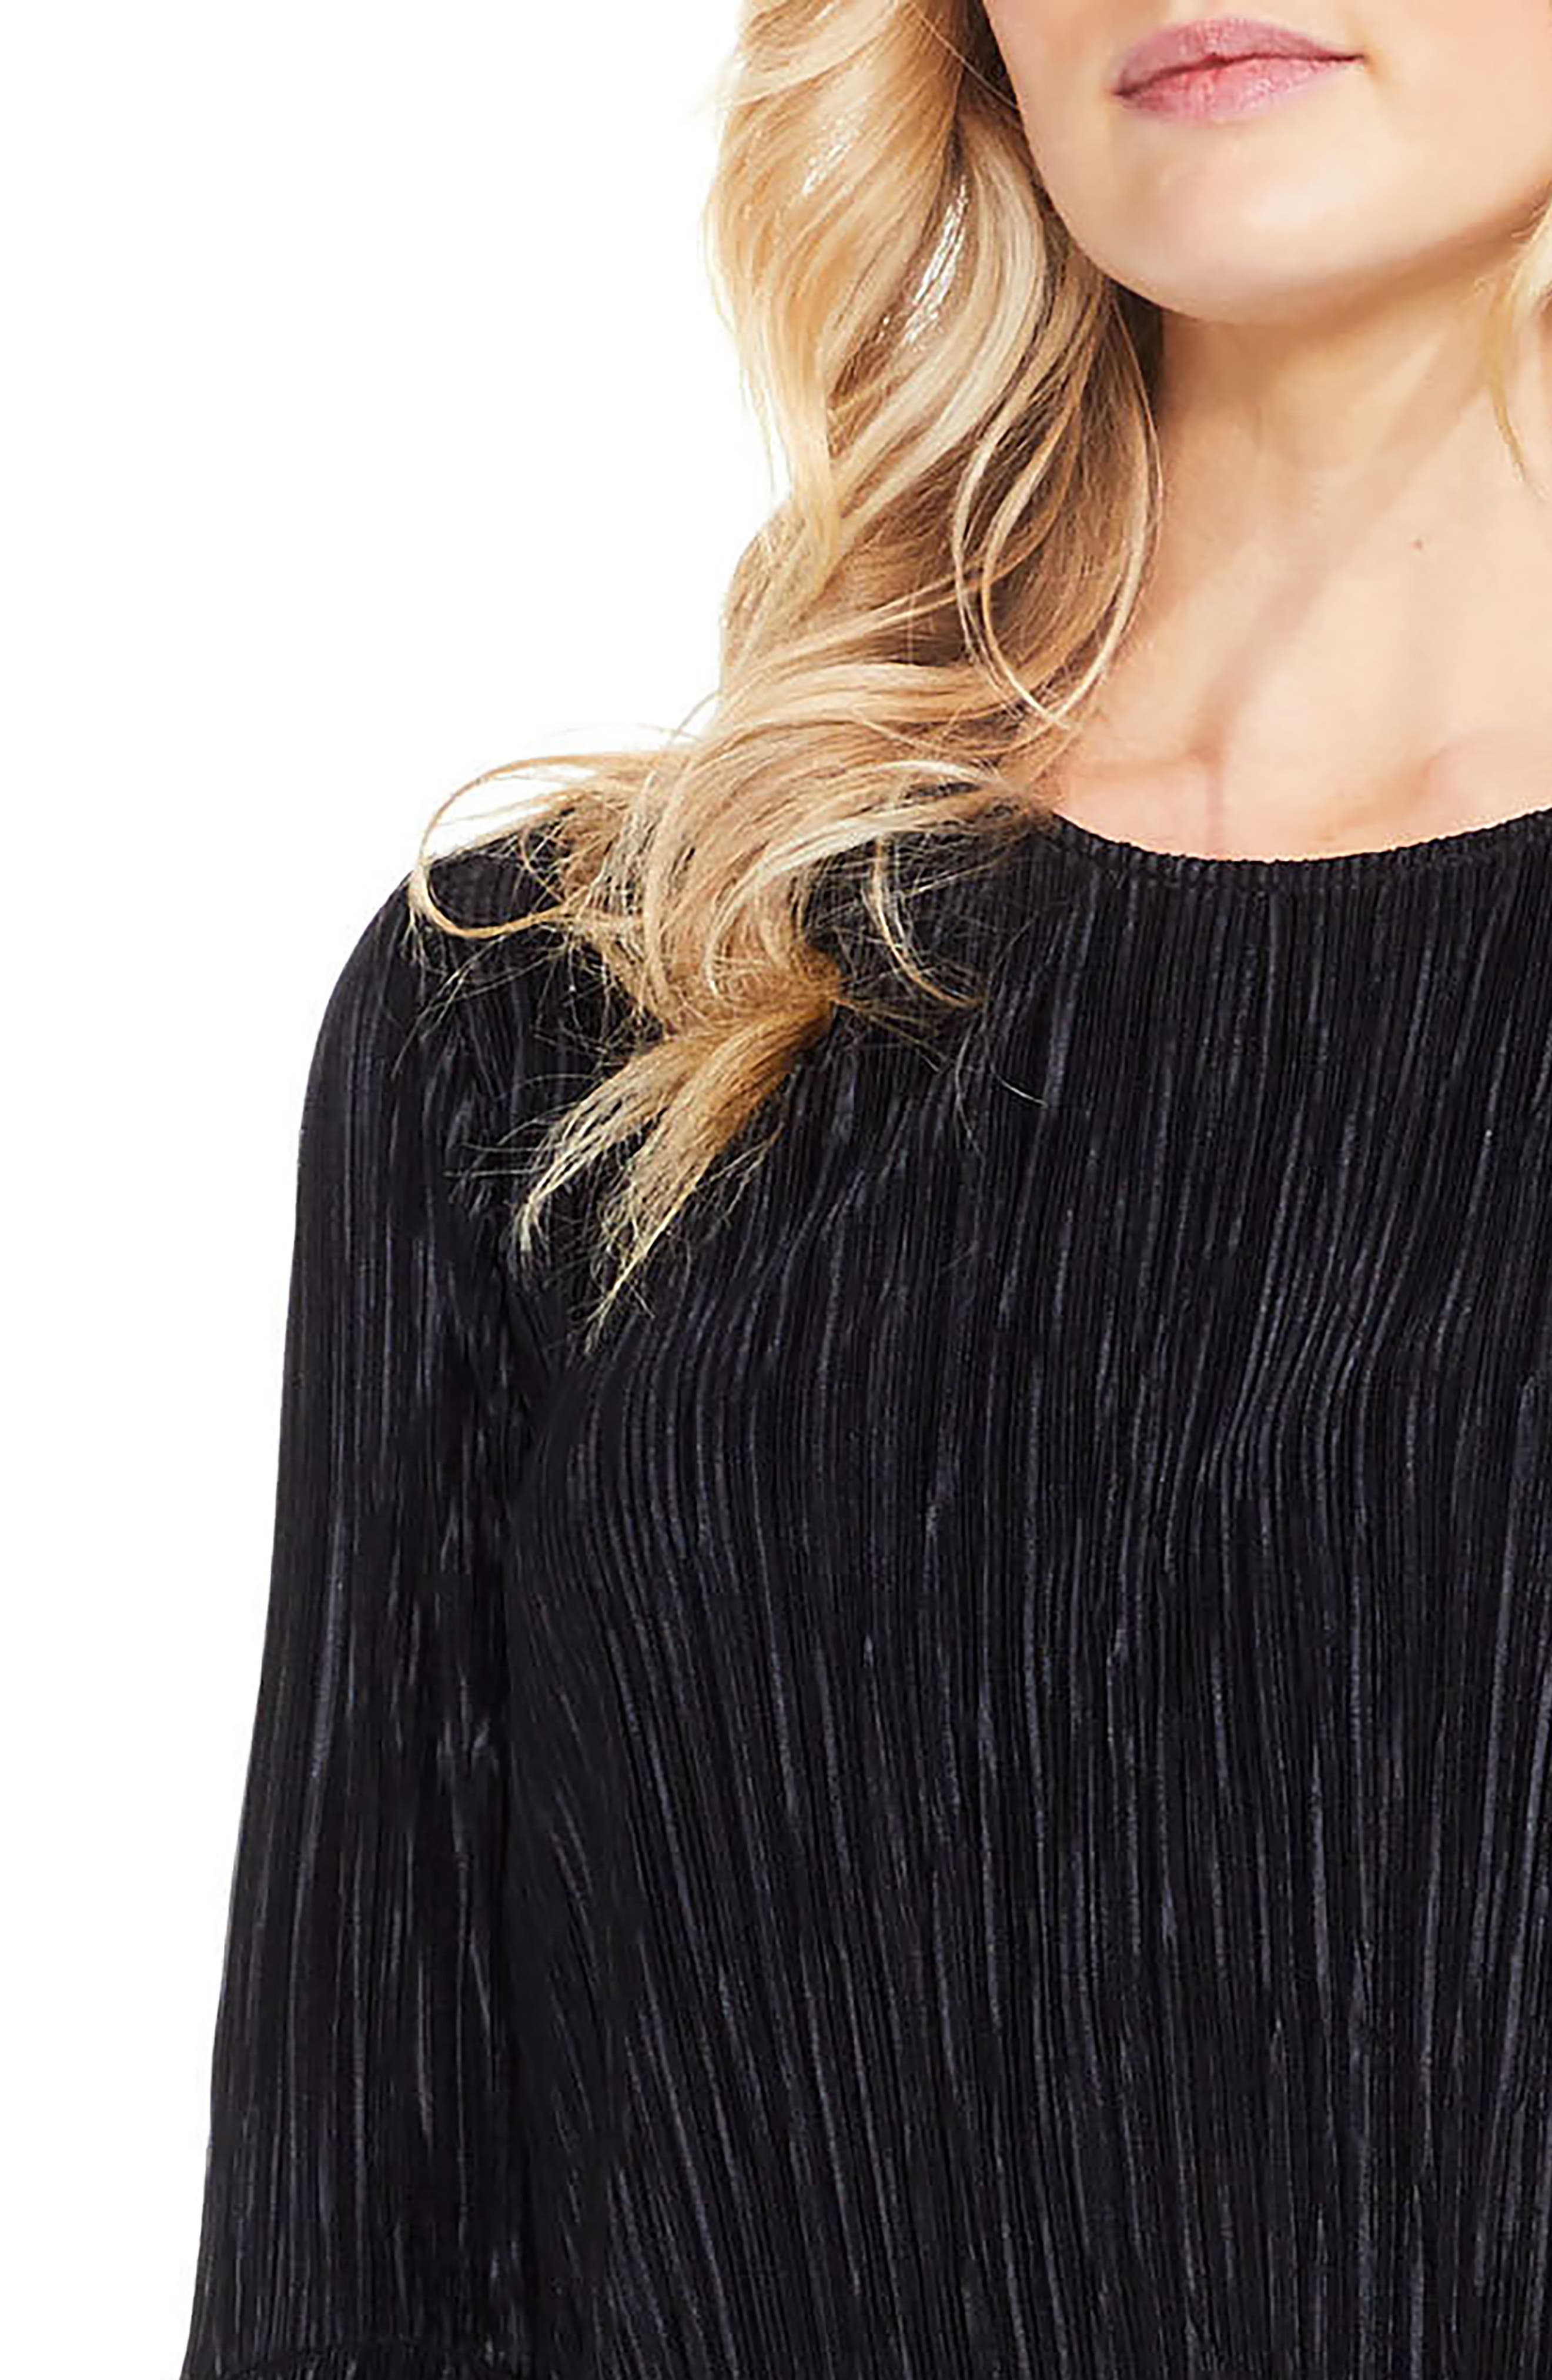 Alternate Image 1 Selected - Vince Camuto Pleated Knit Top (Regular & Petite)